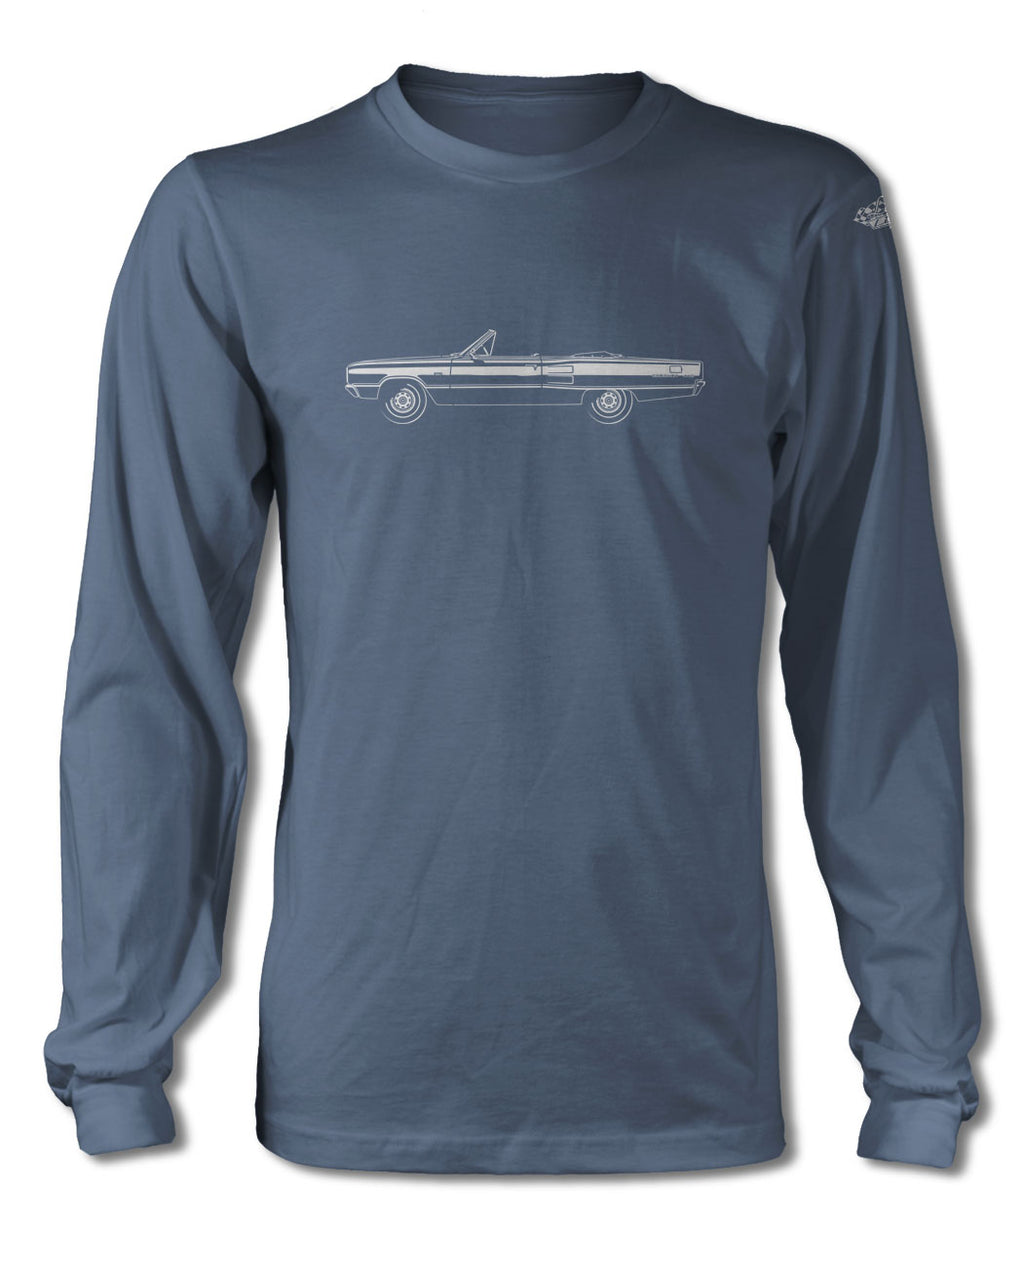 1967 Dodge Coronet 440 Convertible T-Shirt - Long Sleeves - Side View